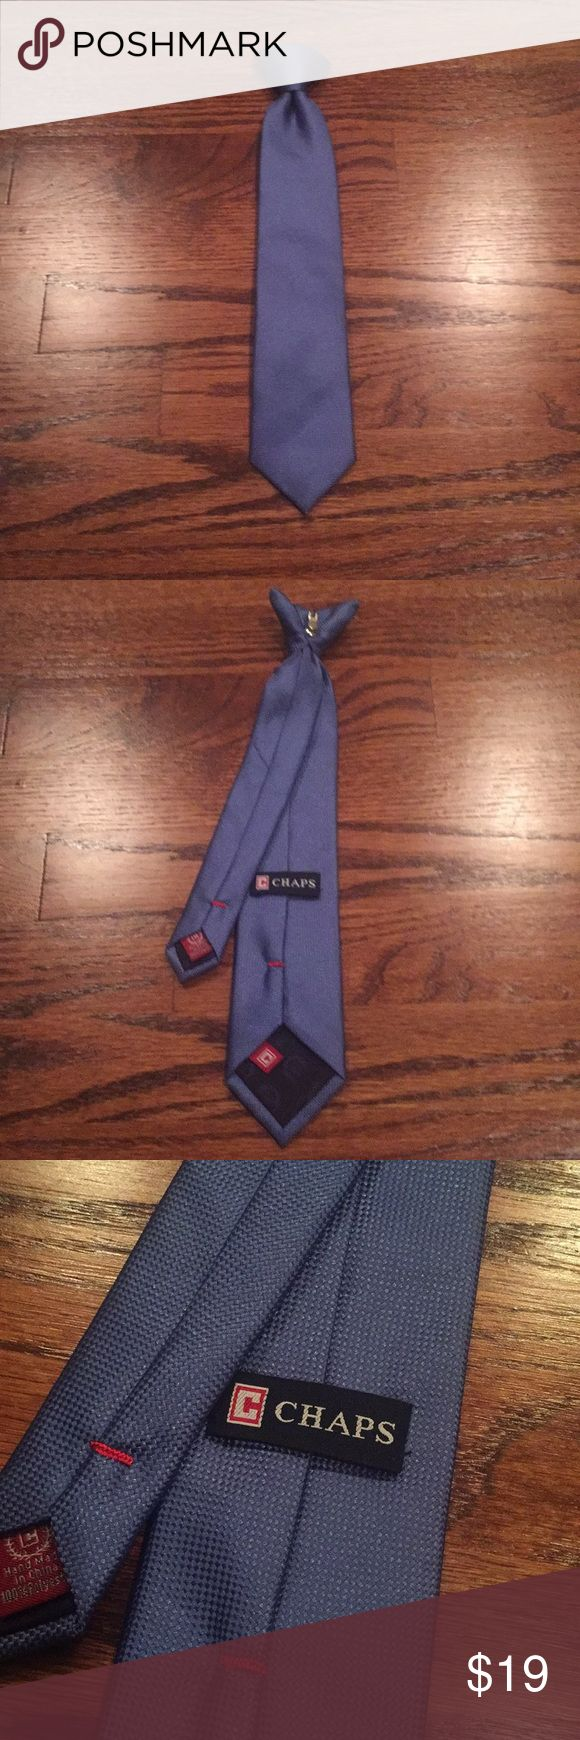 Boy's Chaps Clip On Tie Great condition. Chaps Accessories Ties